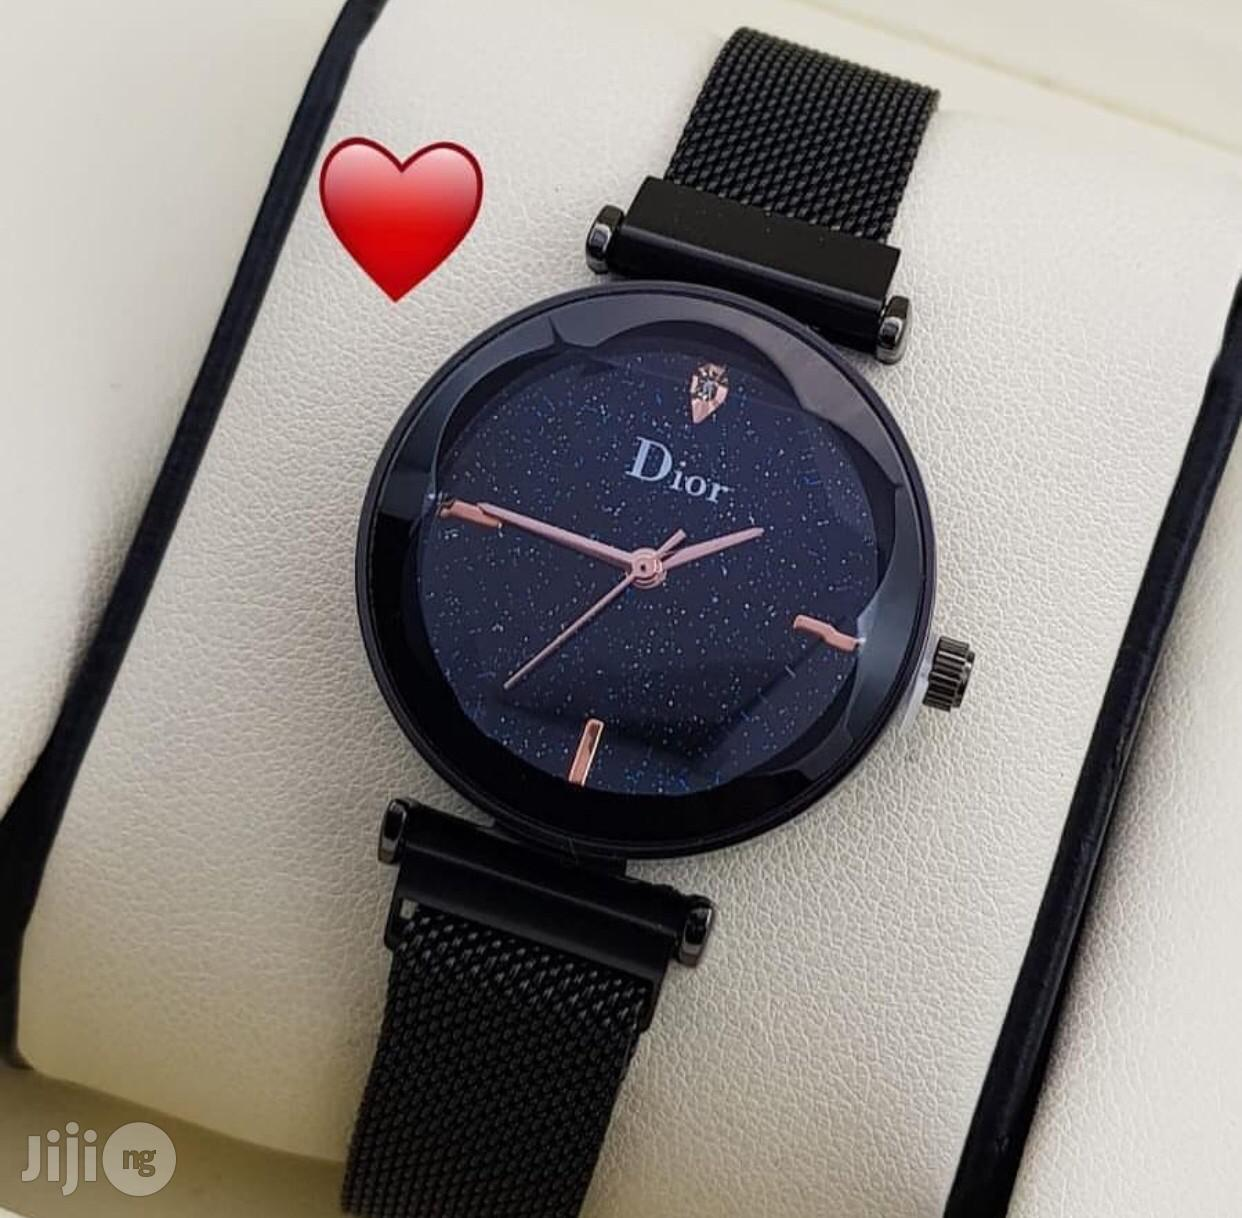 Dior Woman Watch | Watches for sale in Surulere, Lagos State, Nigeria